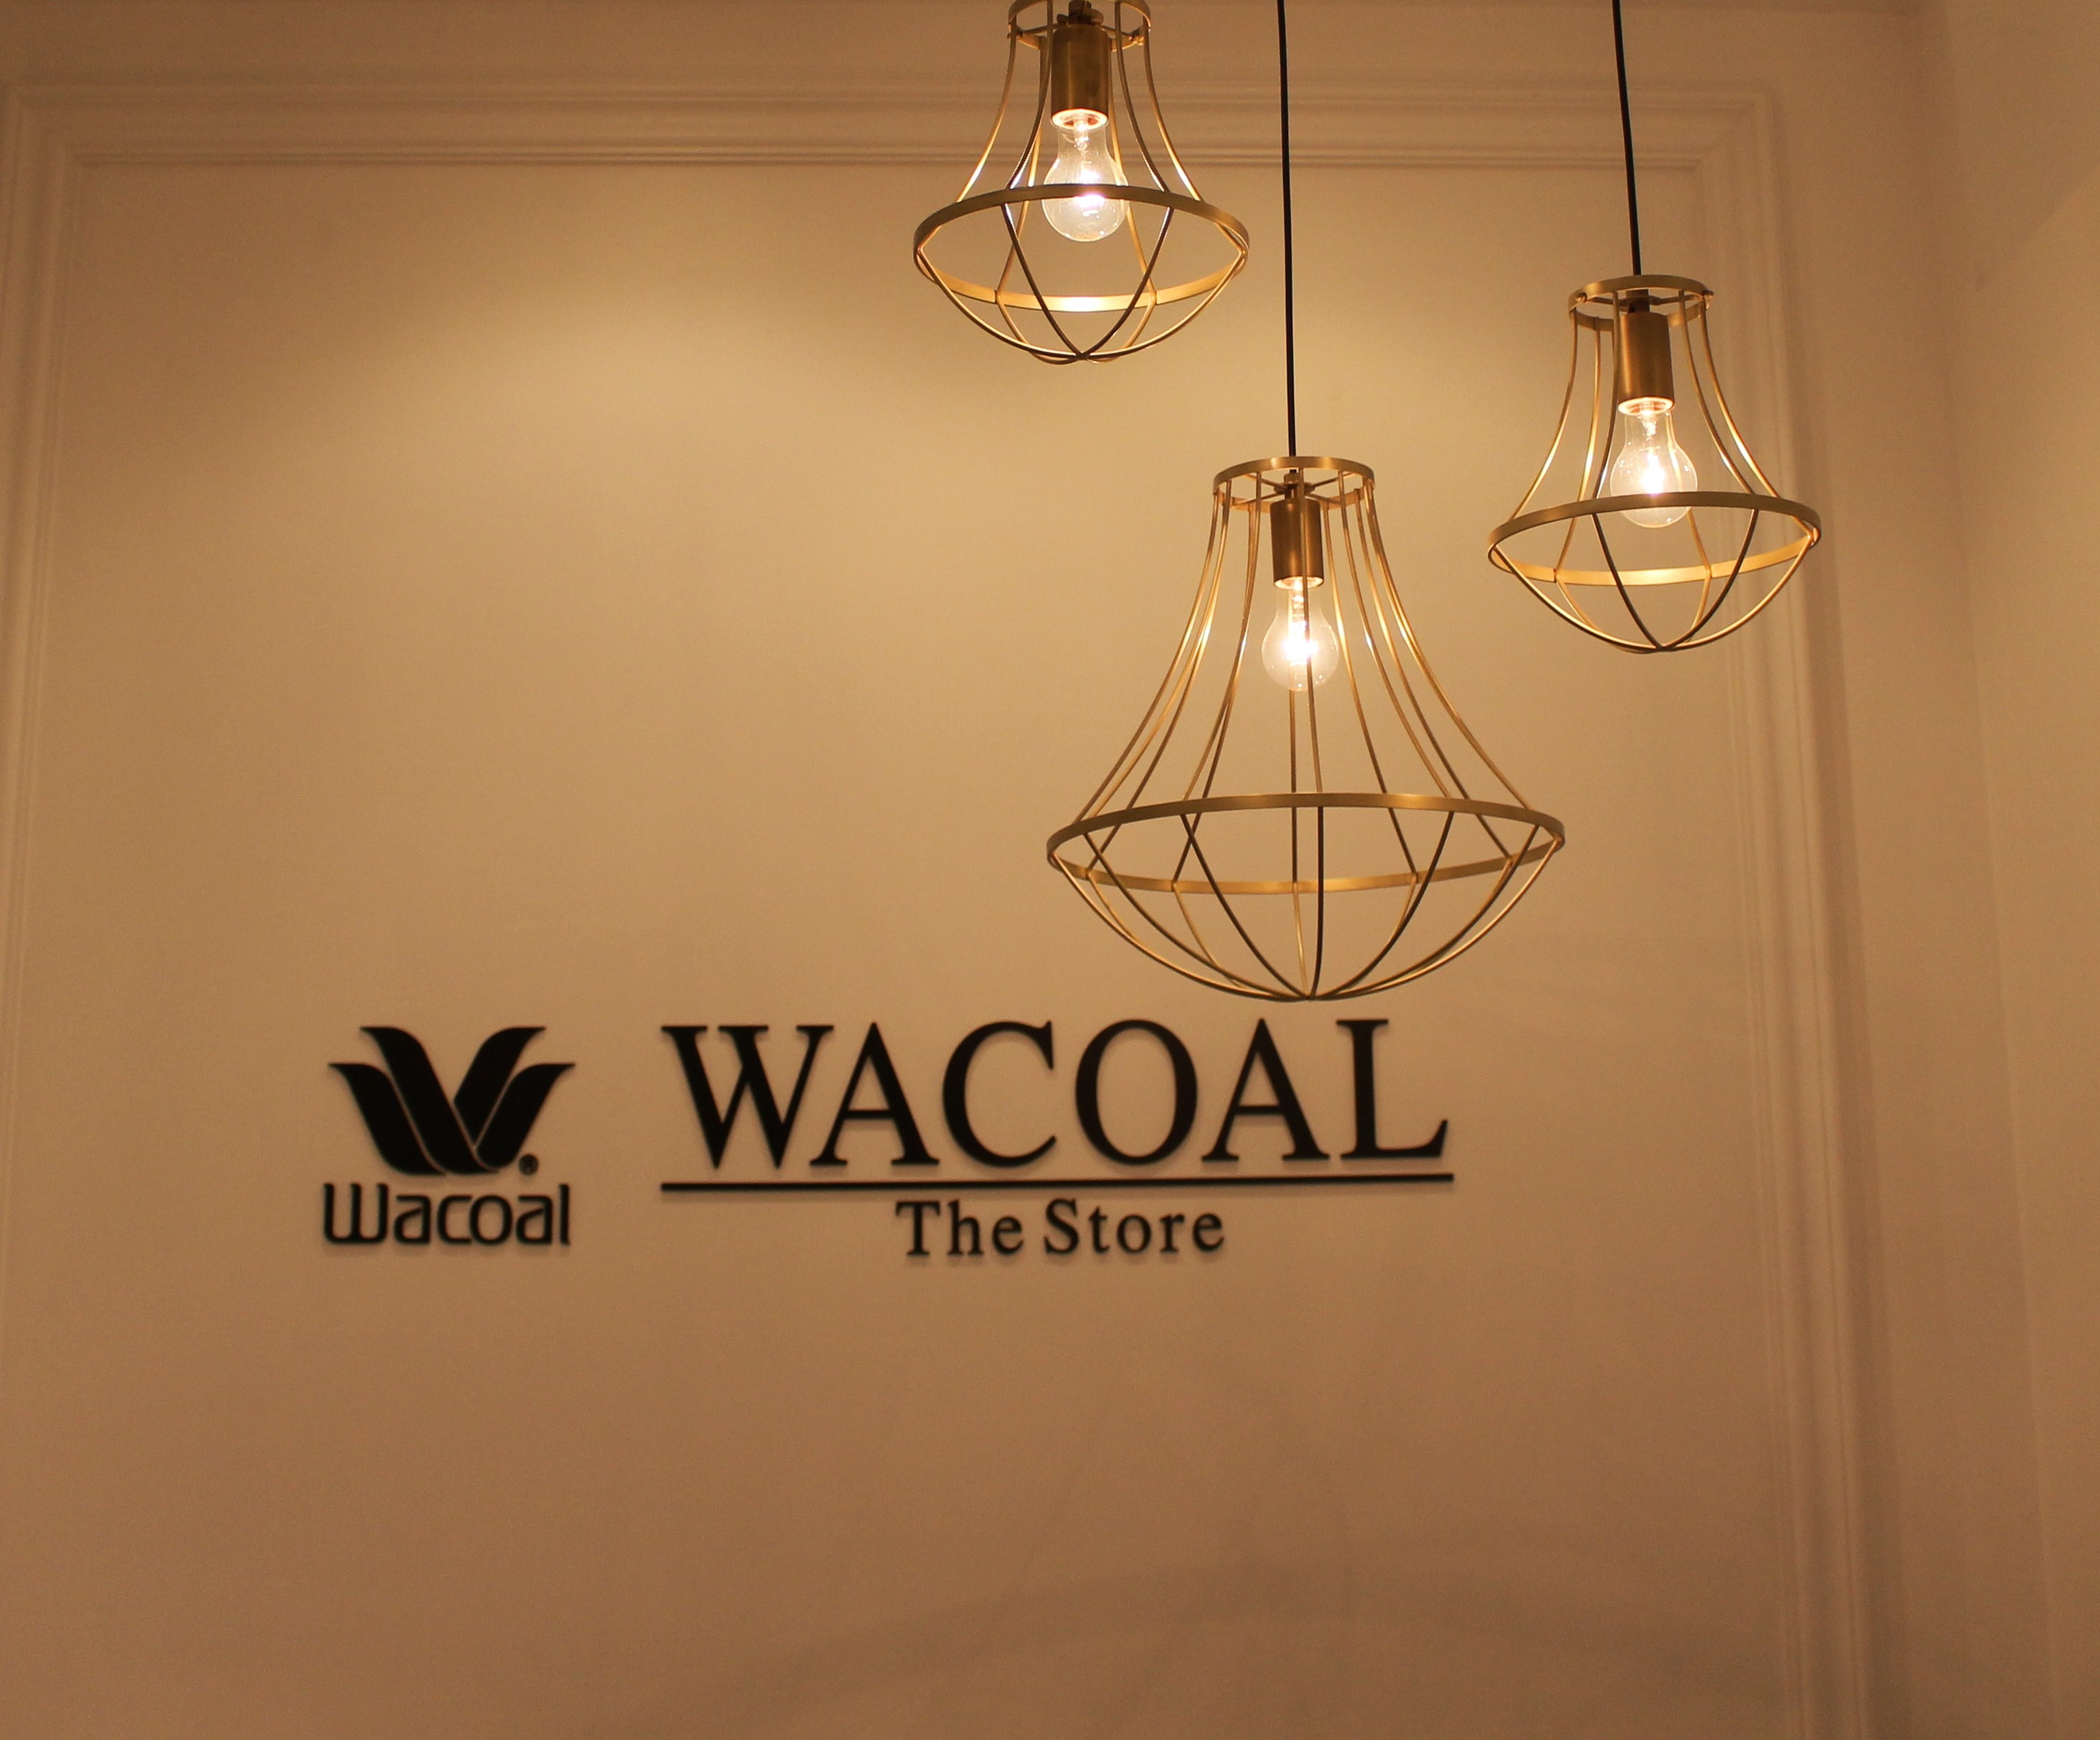 WACOAL The Store 仙台クリスロード店